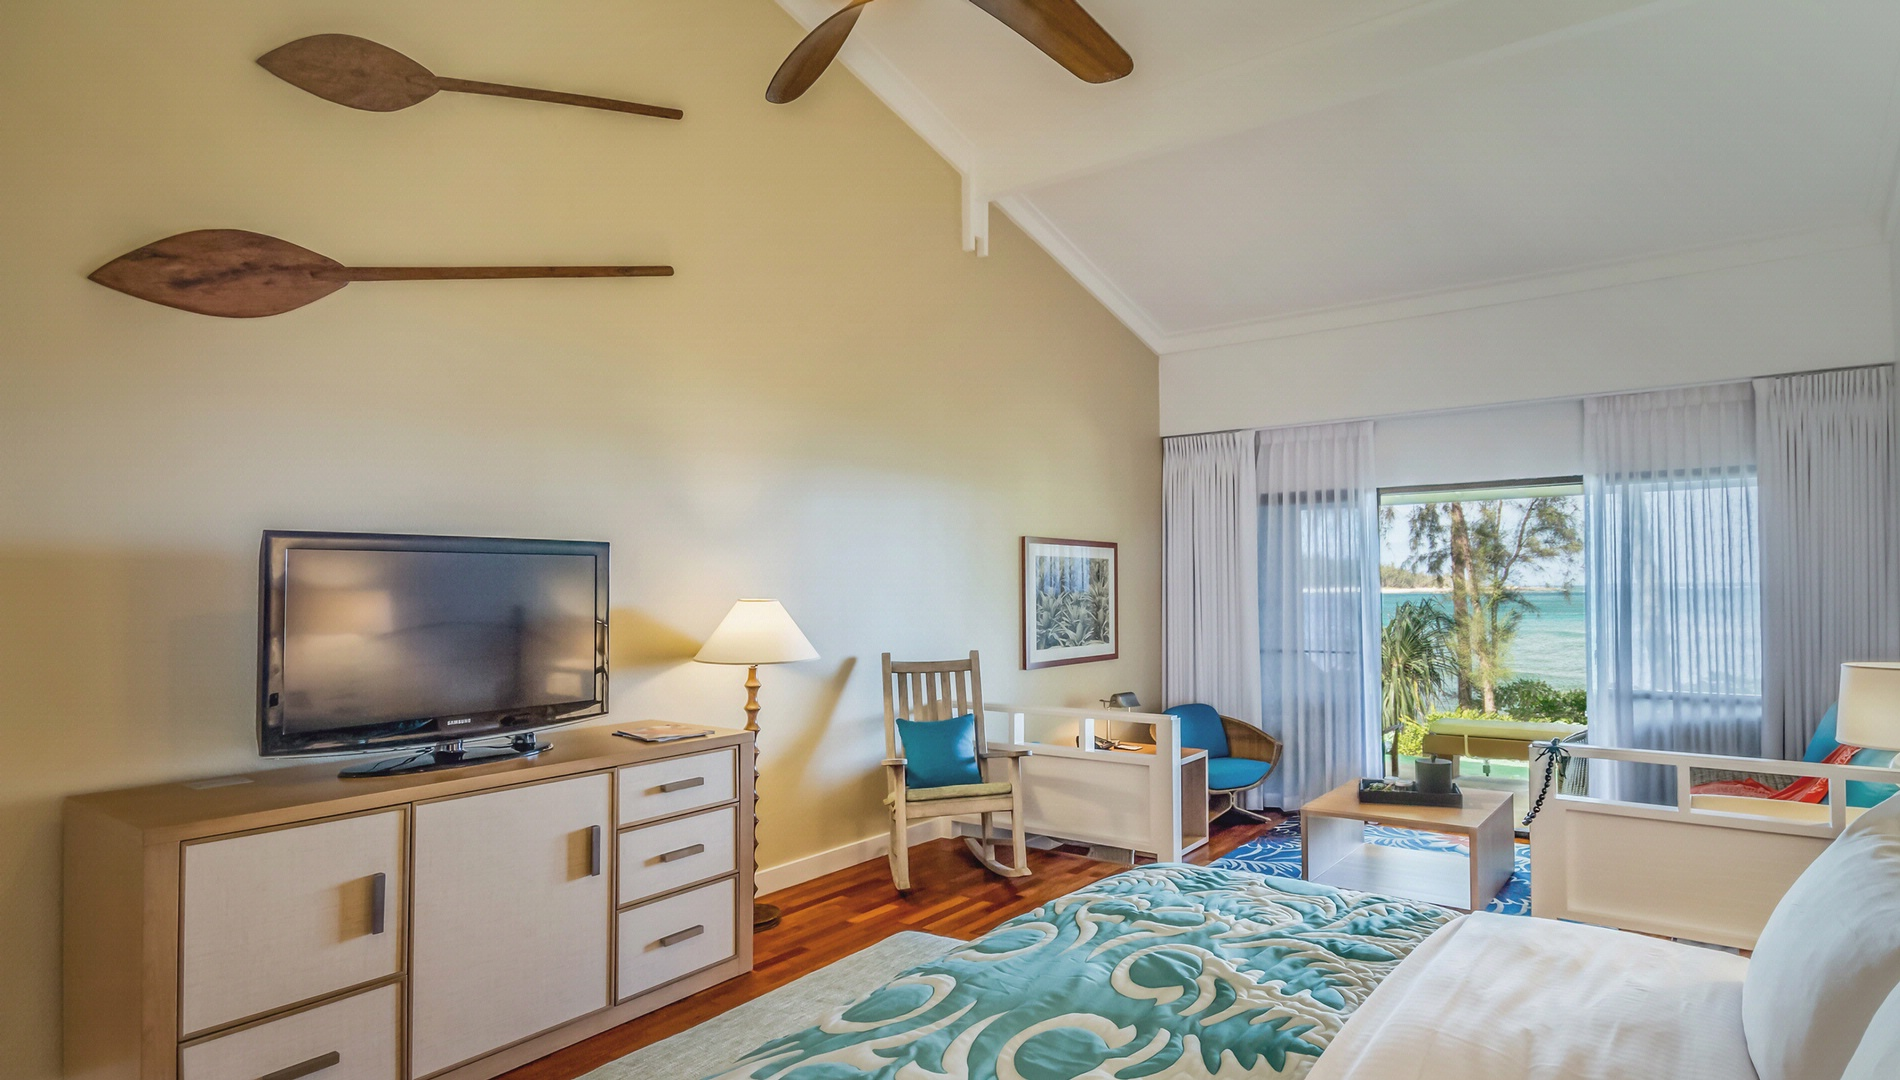 private cottages villas in hawaii turtle bay resort cottages rh gemstonehotelcollection com turtle bay cottage reviews turtle bay cottages for rent